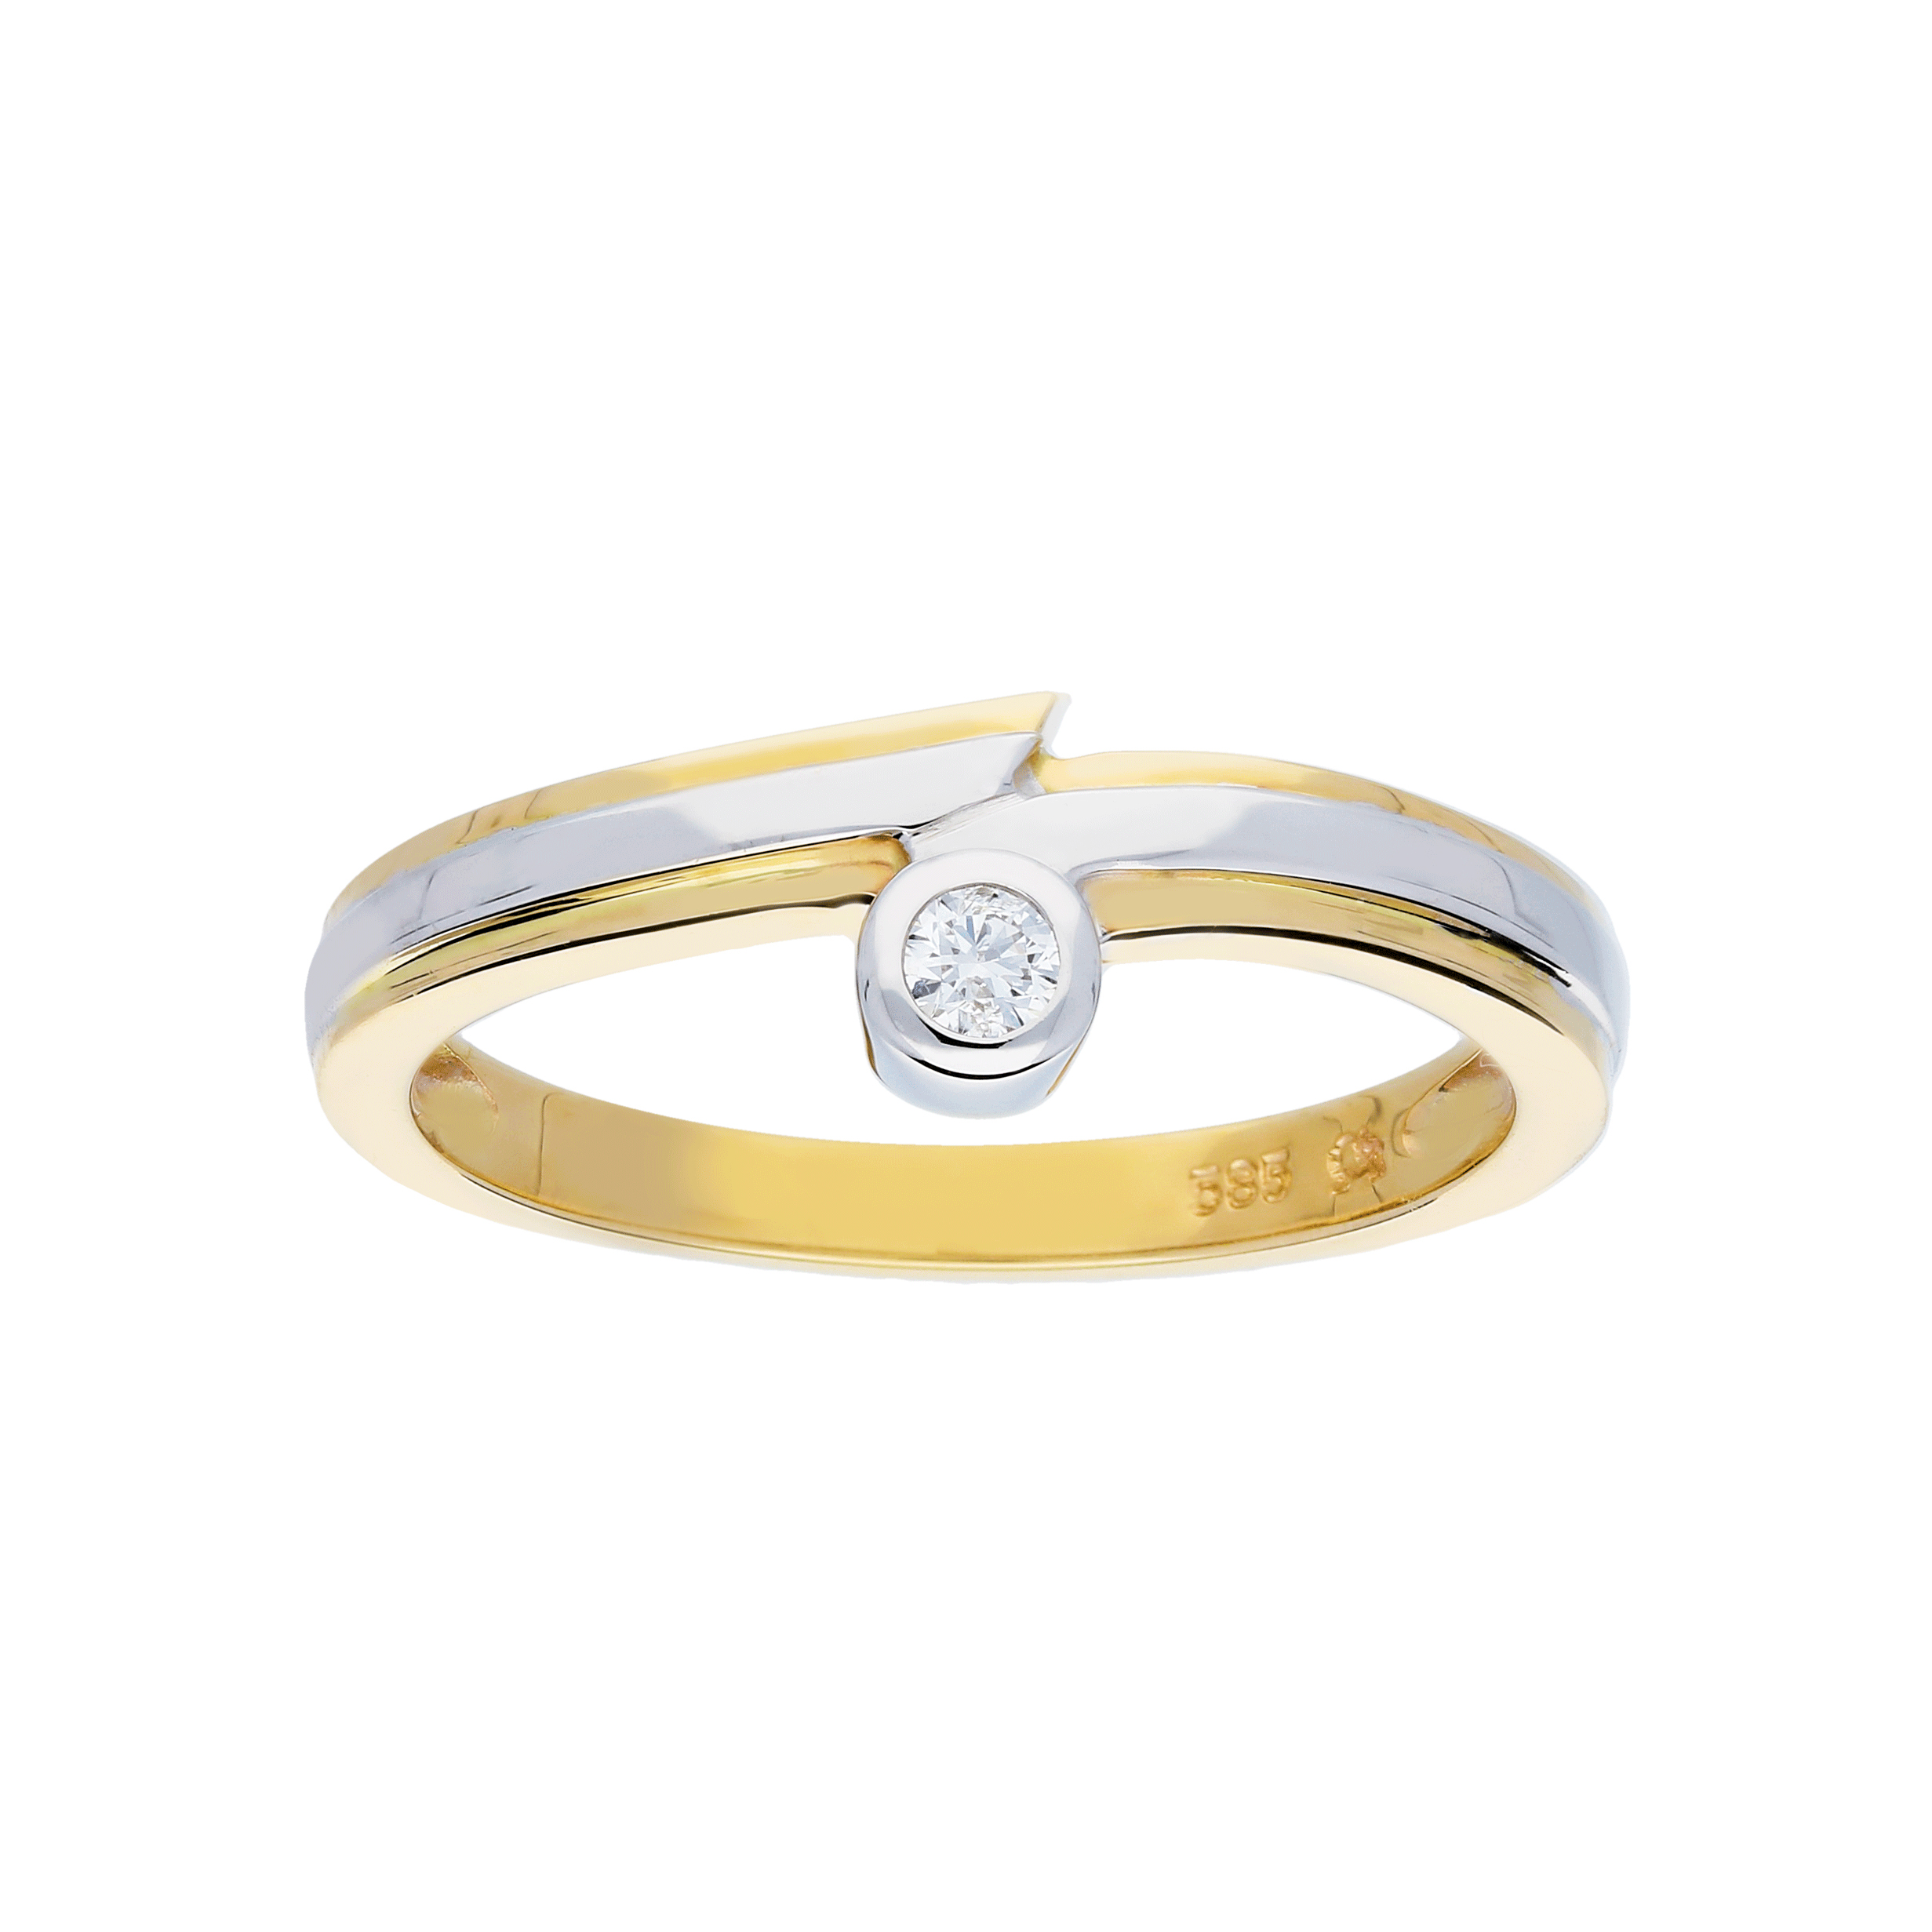 Glow Gouden Ring Bicolor Glanzend Diamant 1 0.055ct G si 214.5225.54